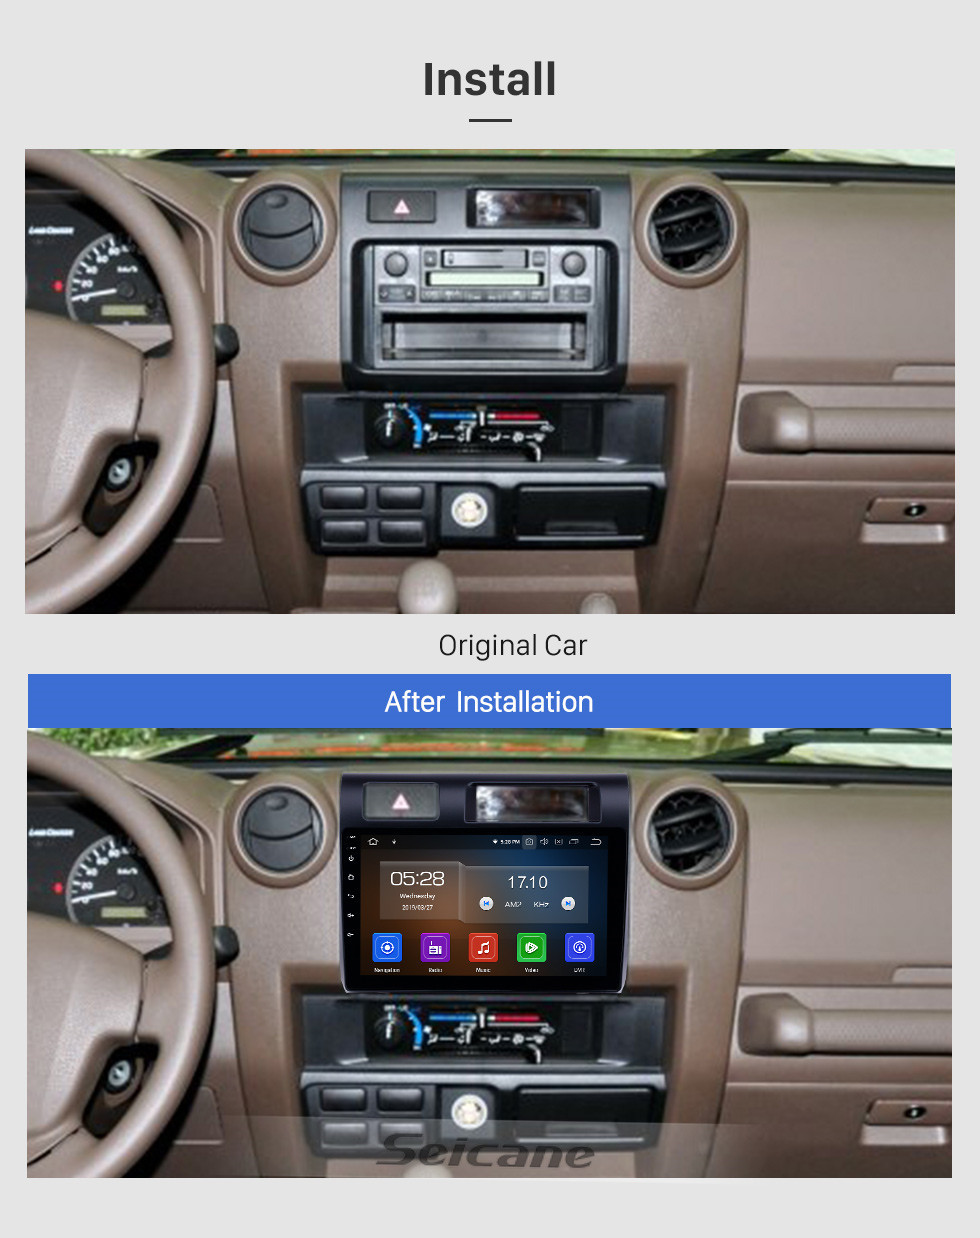 Seicane HD Touchscreen 2015 Toyota Land Cruiser Android 10.0 9 inch GPS Navigation Radio Bluetooth USB Carplay WIFI AUX support Steering Wheel Control